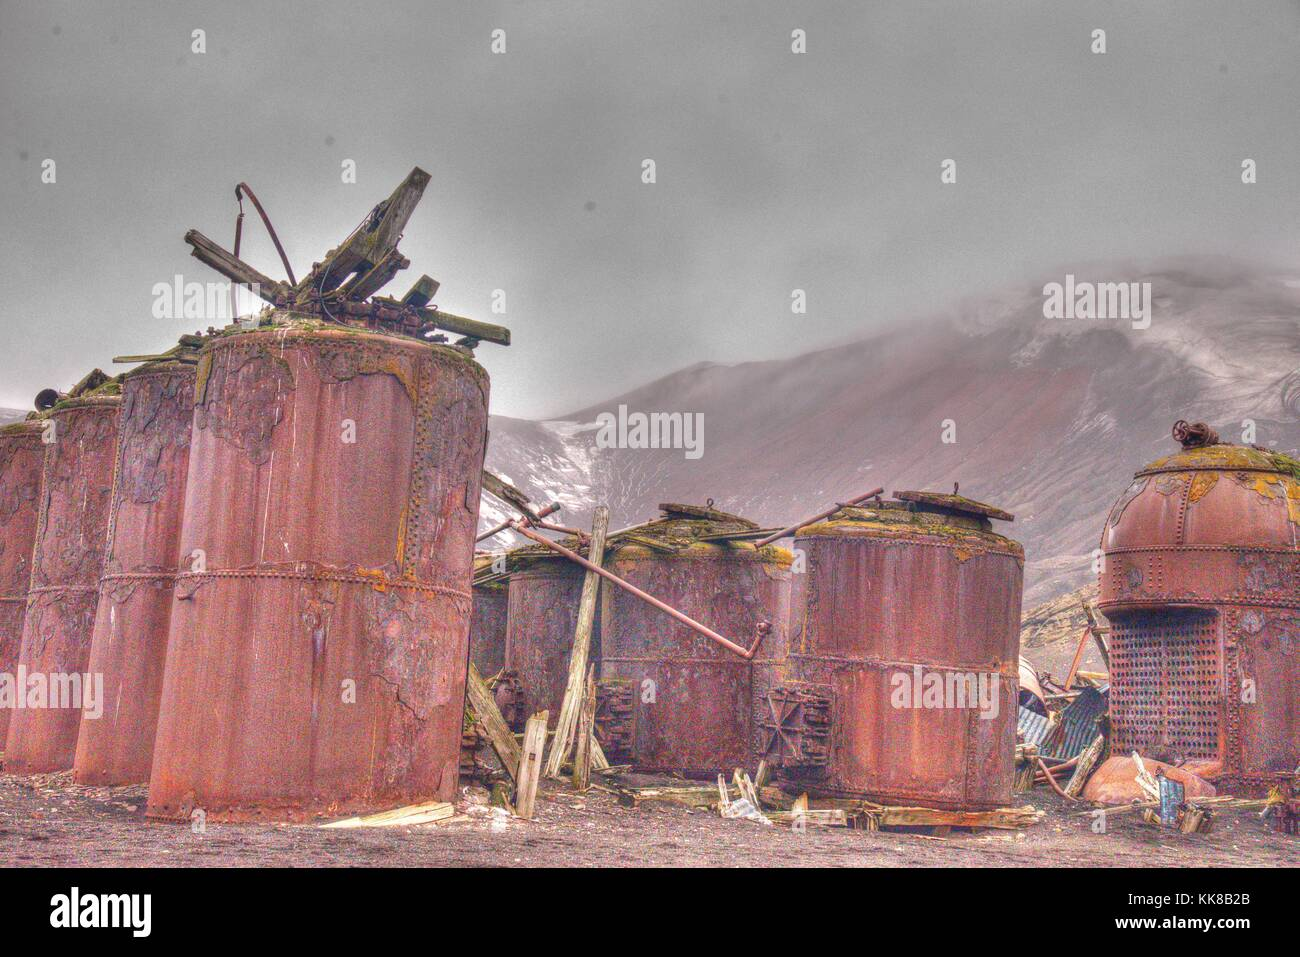 Adevnture Stock Photos Amp Adevnture Stock Images Alamy